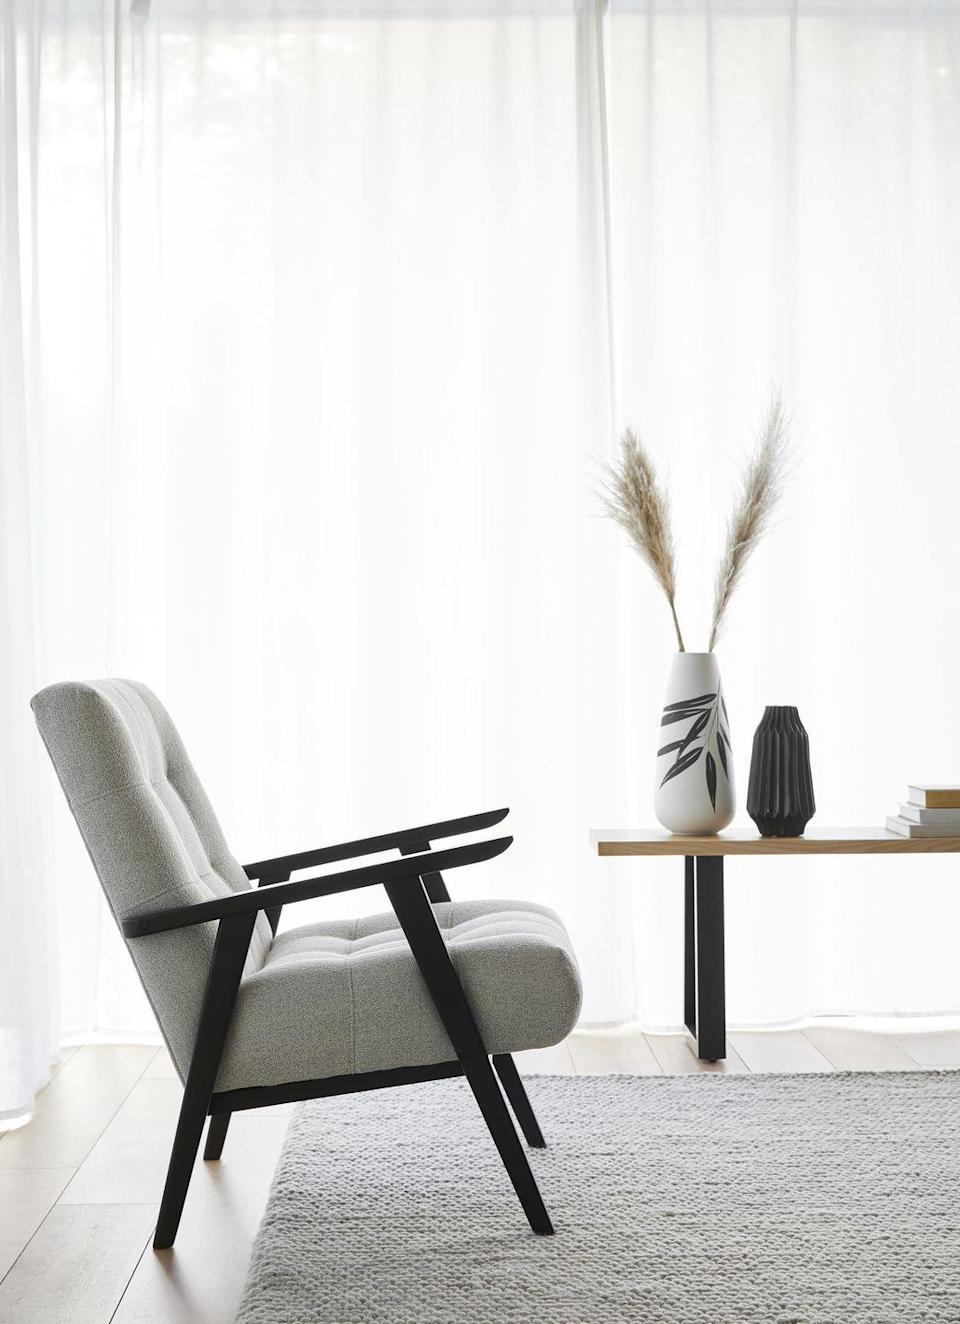 """<p>Other items to look forward to in the range include simple pieces, quality craftsmanship and gorgeous furnishings that wouldn't look out of place in an <a href=""""https://www.housebeautiful.com/uk/decorate/walls/a35162682/interior-colour-trends-2021/"""" rel=""""nofollow noopener"""" target=""""_blank"""" data-ylk=""""slk:interiors"""" class=""""link rapid-noclick-resp"""">interiors</a> magazine. </p><p>Our favourite is this gorgeous chair (£299), which is the perfect addition to a stylish and minimalist environment. Be sure to keep an eye open for it when it launches next month...<br></p>"""